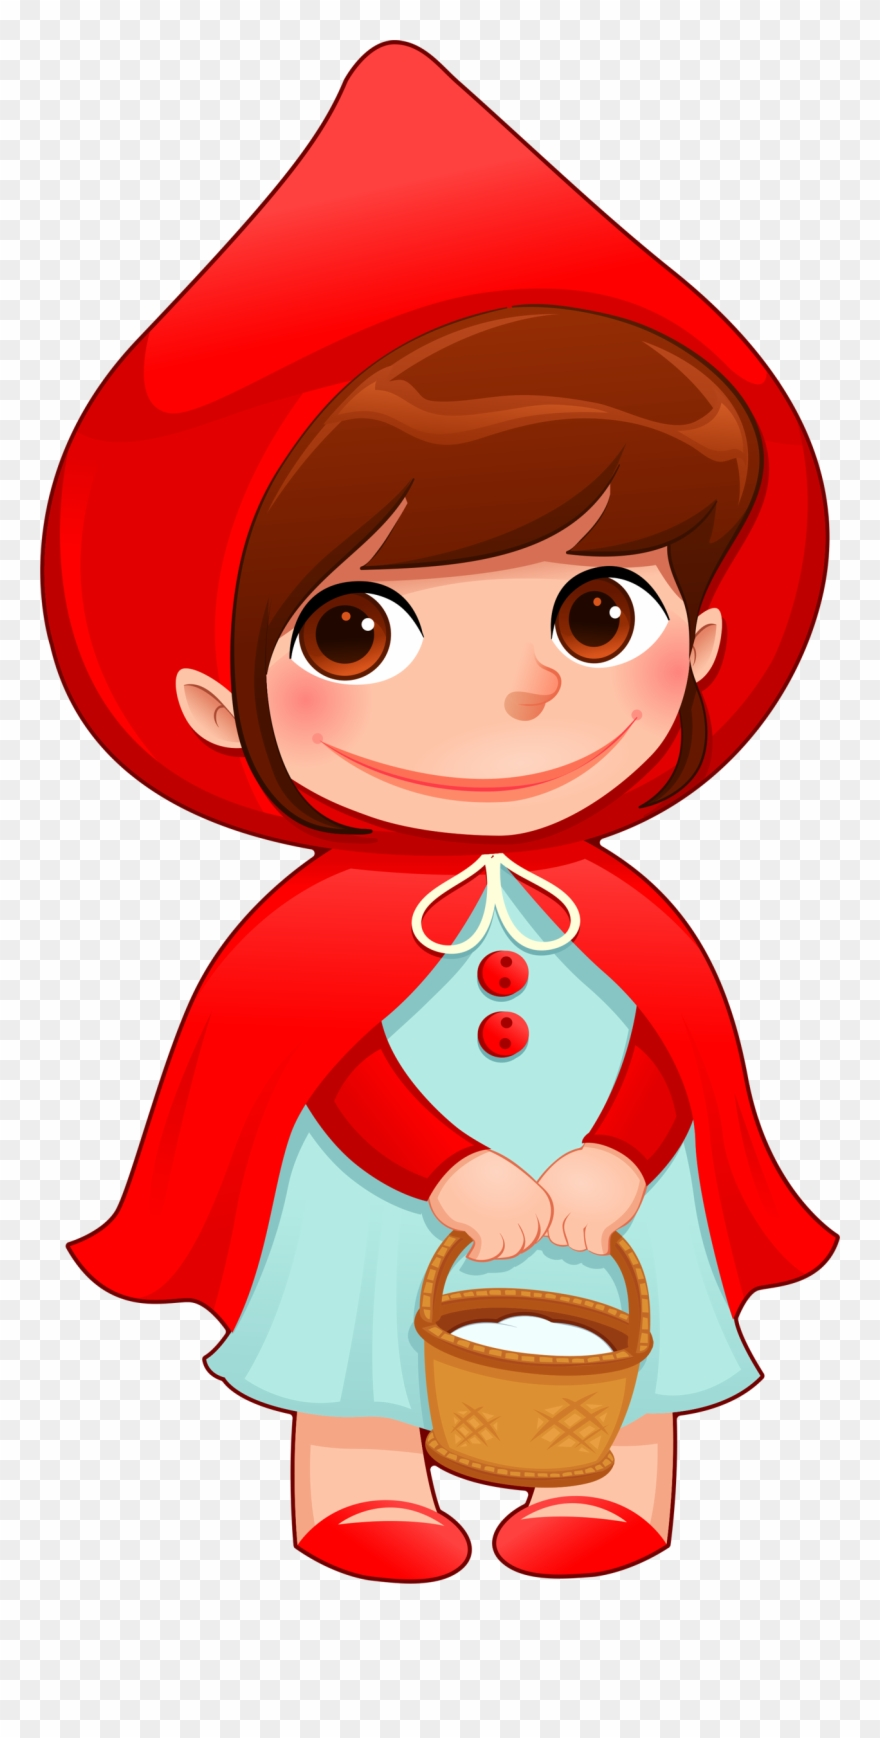 Little red riding hood path clipart picture black and white stock Red Riding Hood, Little Red, Hoods, Anime Dolls, Illustration ... picture black and white stock